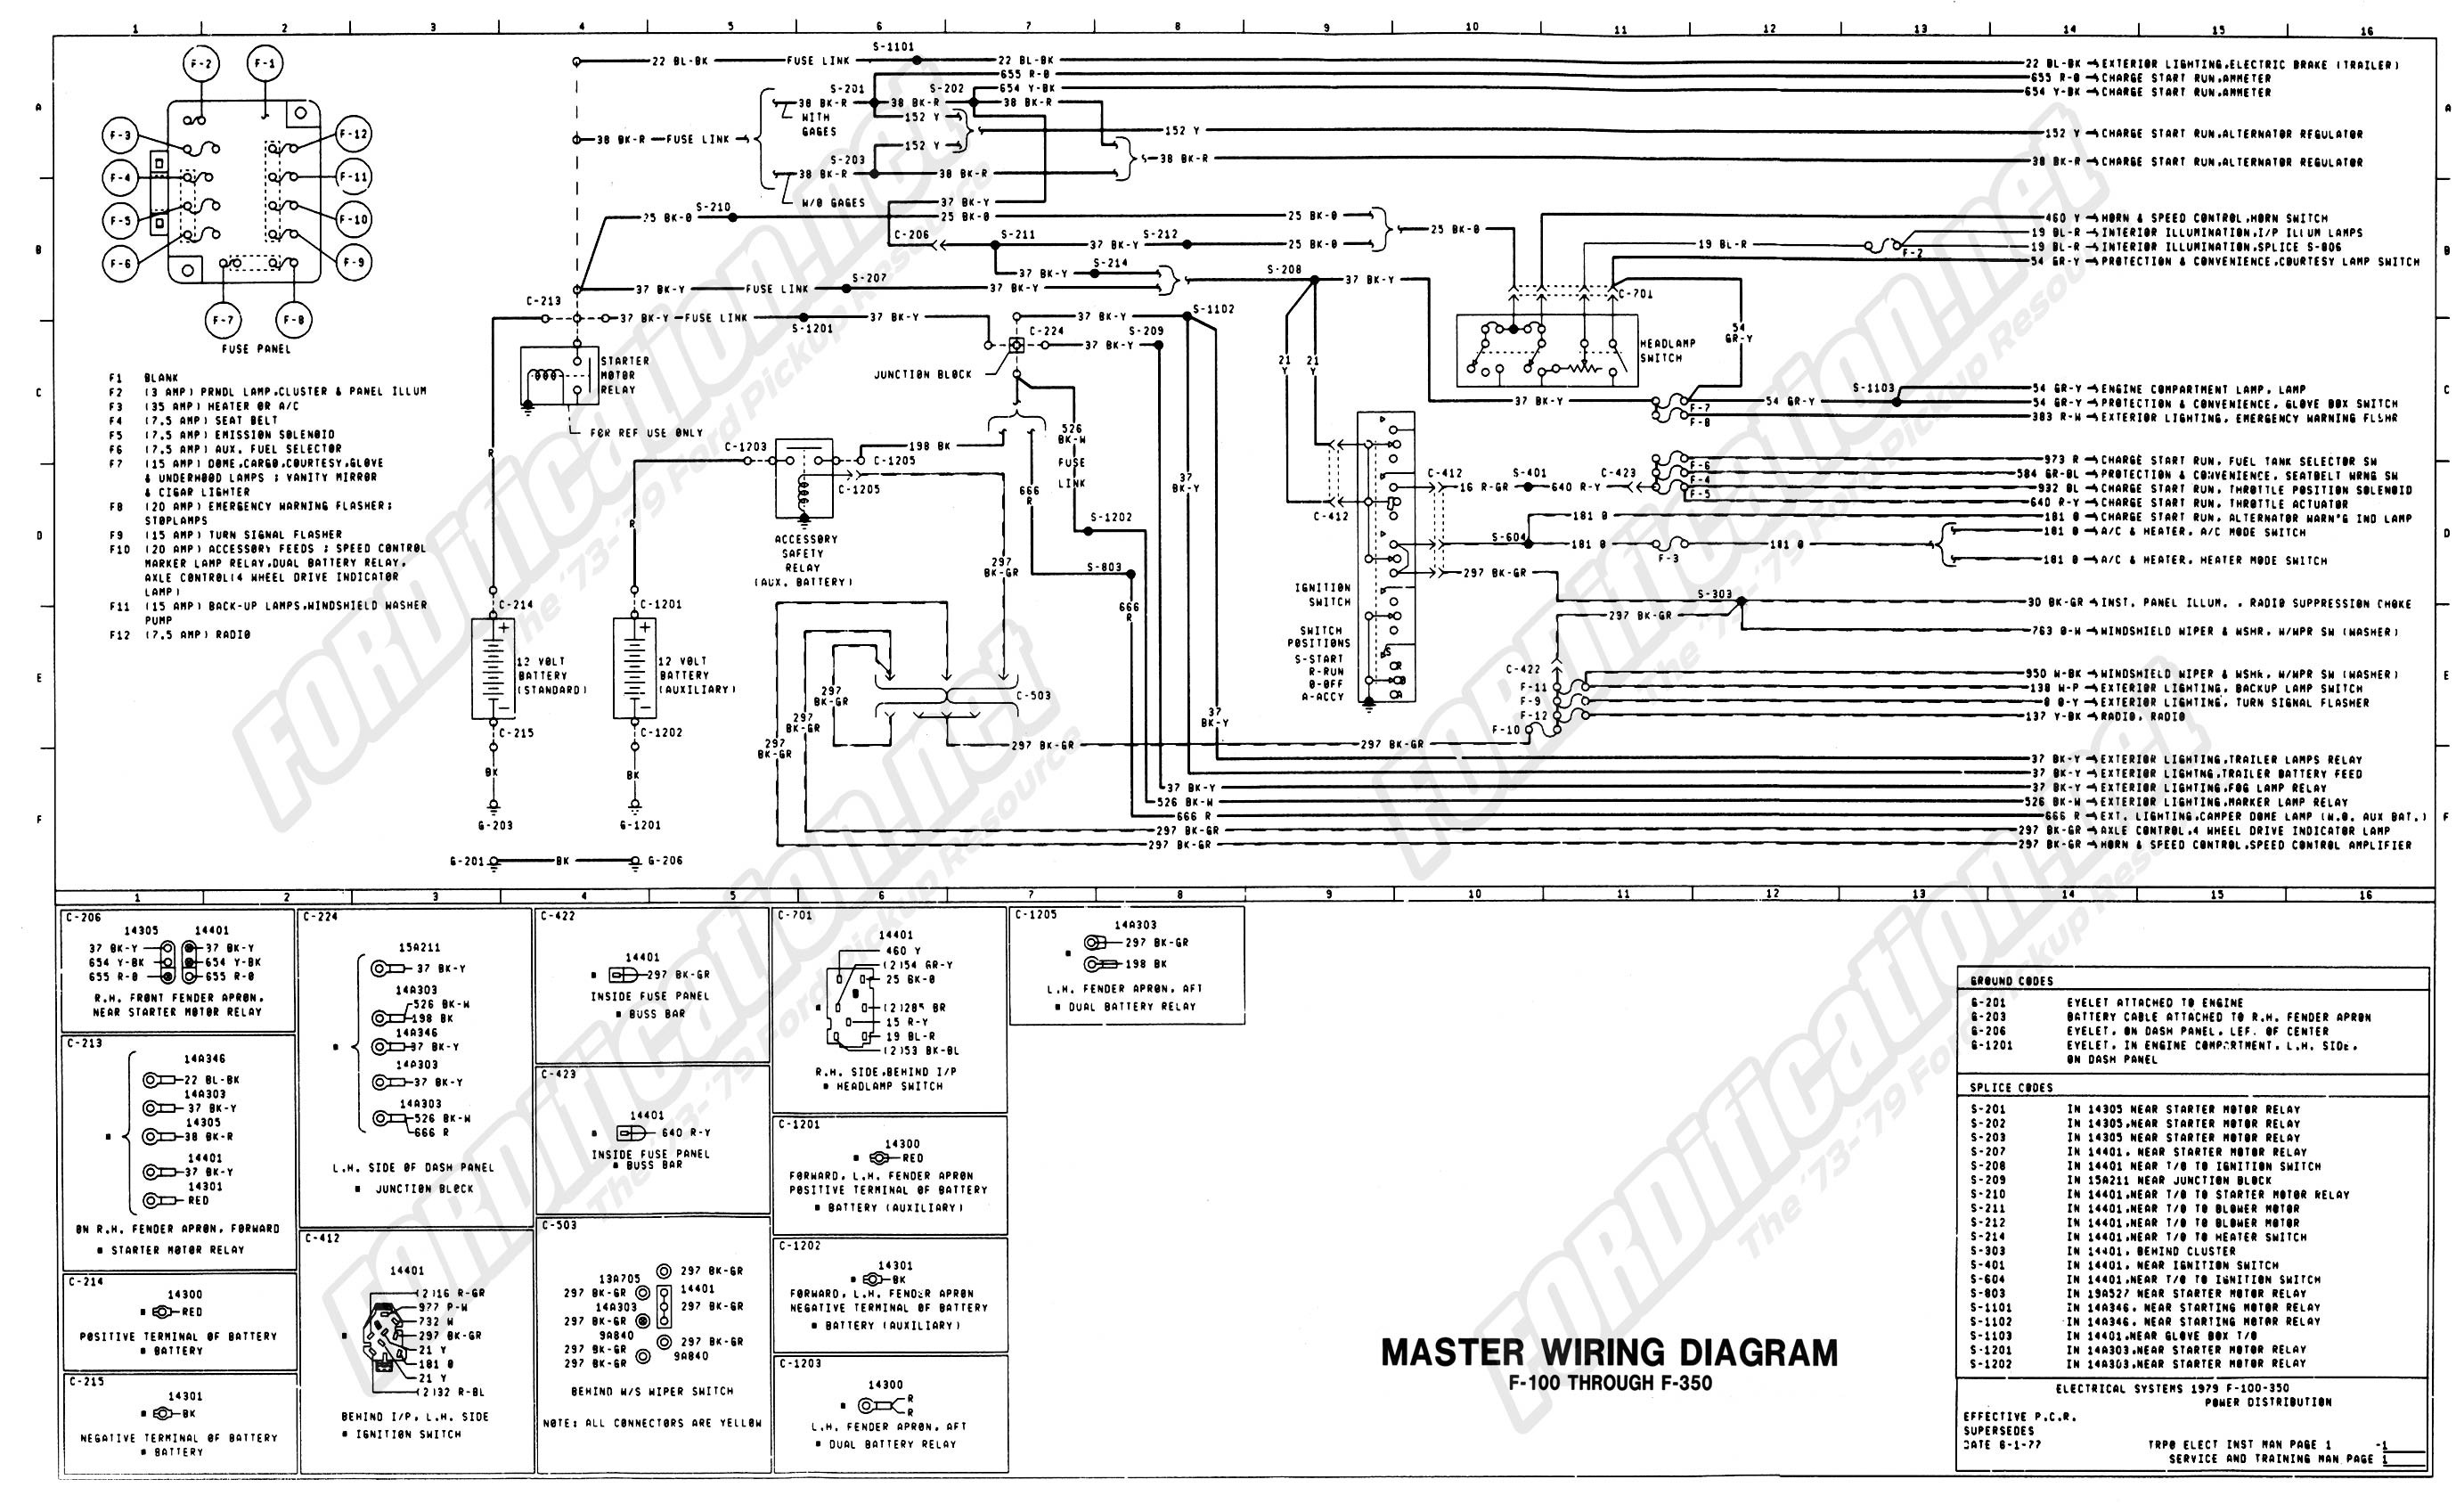 Ford Bronco Starter Solenoid Wiring Diagram Inspirational 1of9 79 F150 Truck Enthusiasts Forums From